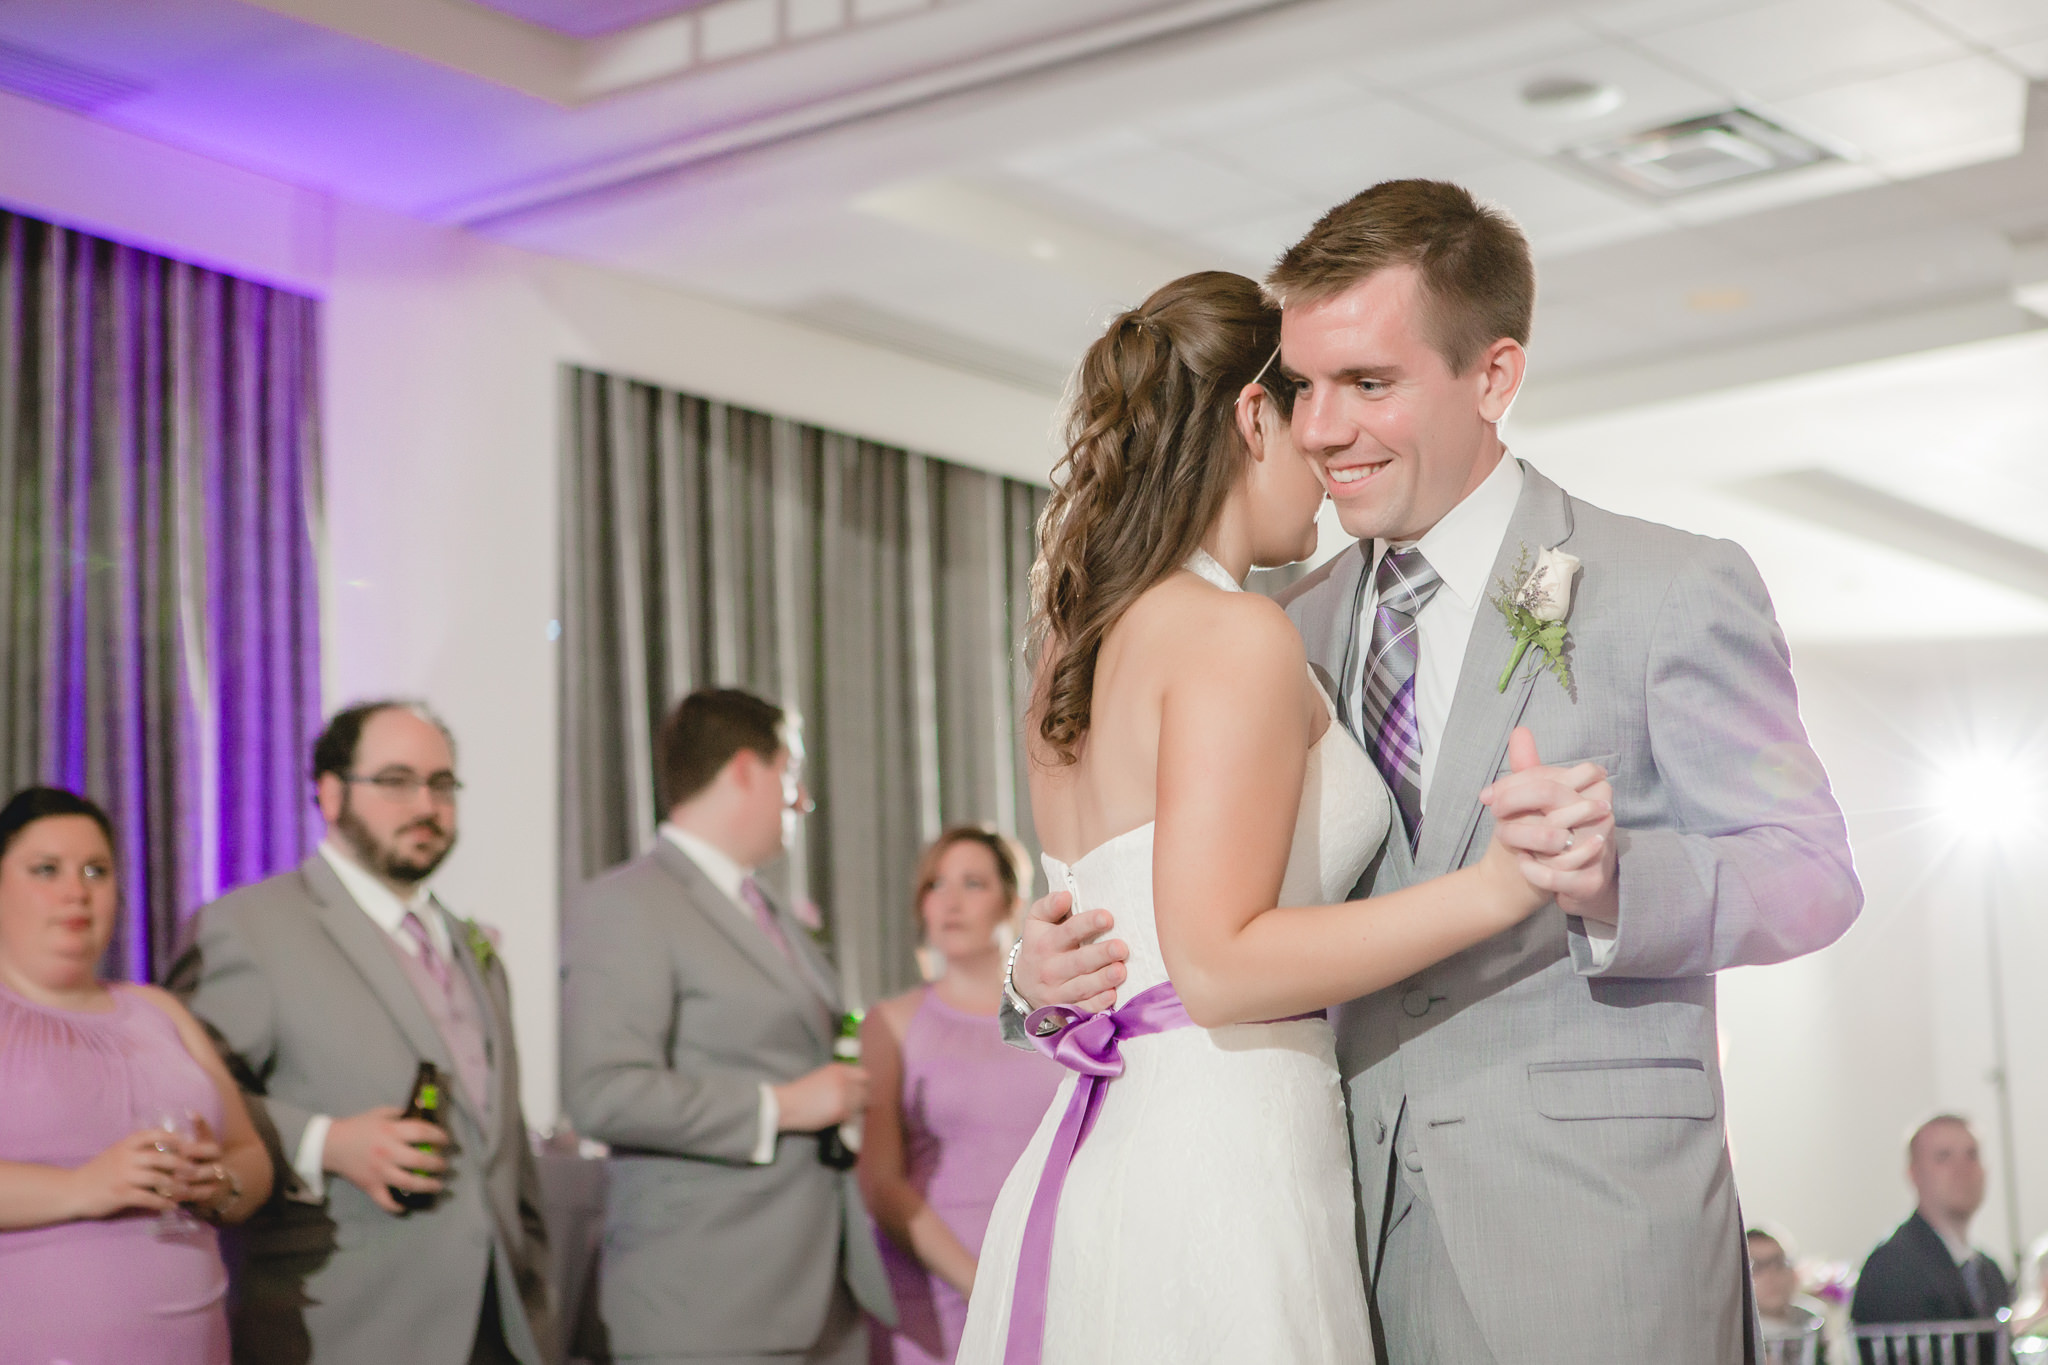 First dance at the Pittsburgh Airport Marriott wedding reception